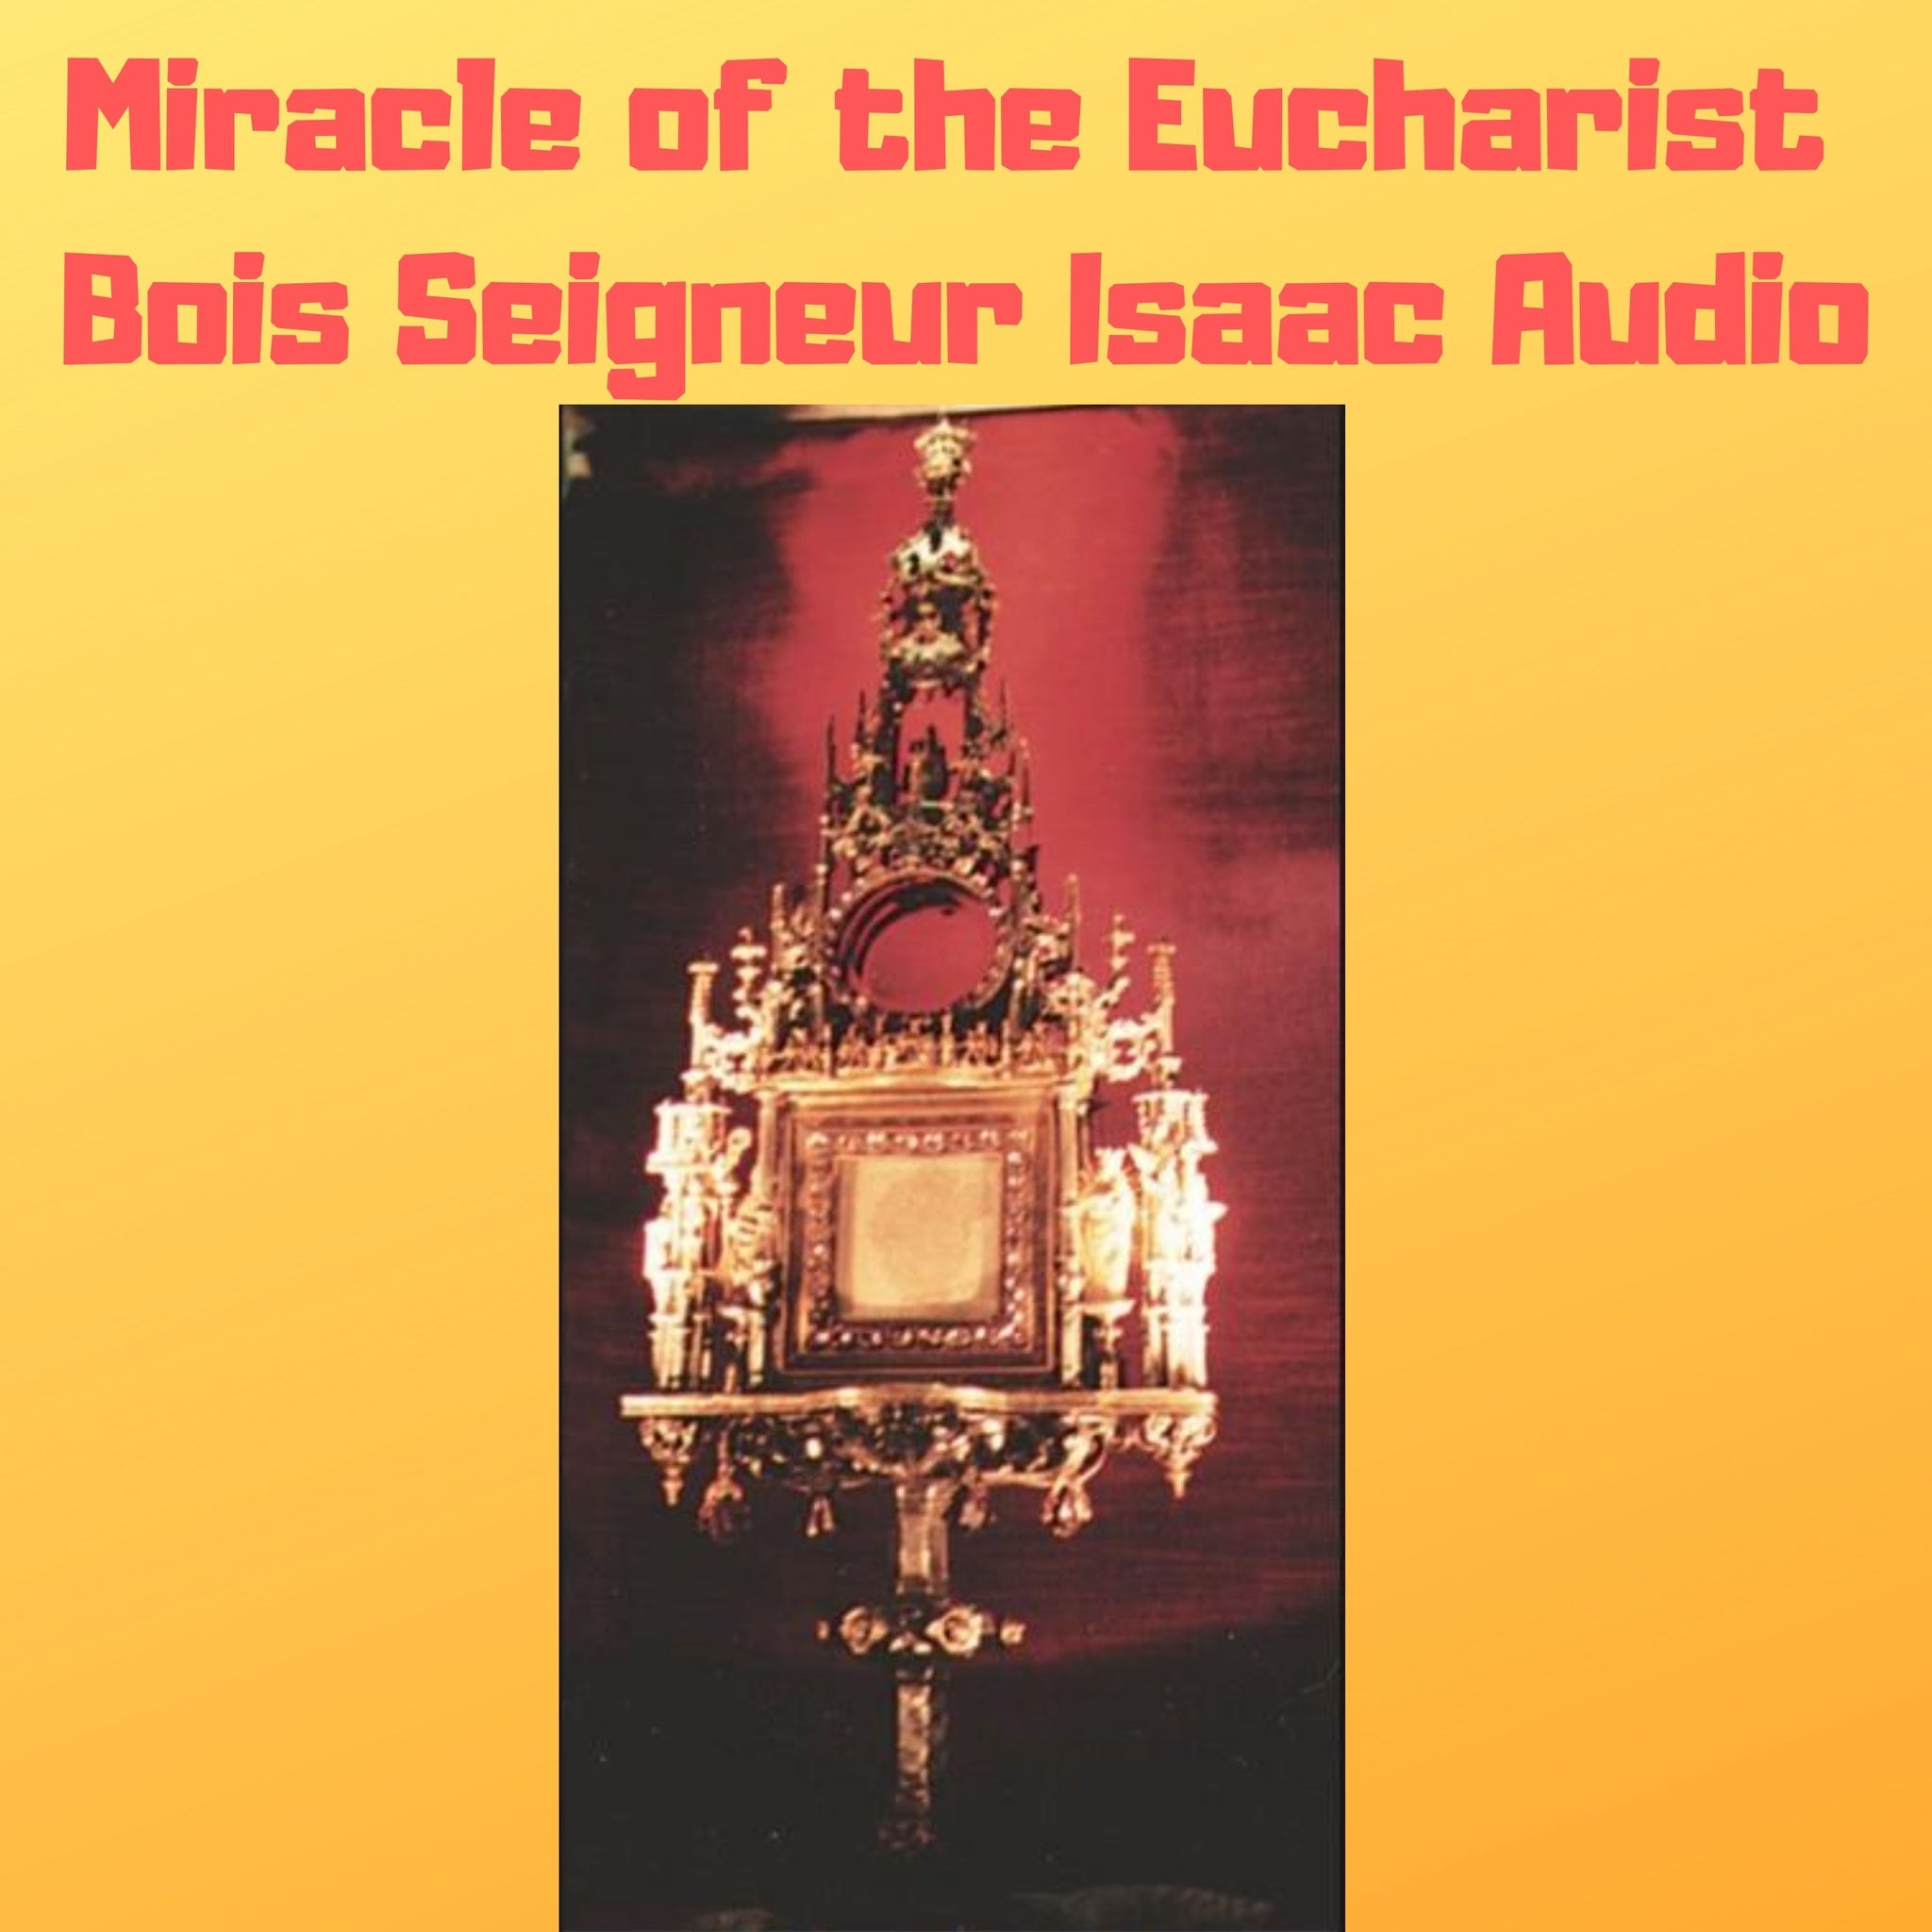 Miracle of the Eucharist of Bois Seigneur Isaac, Belgium -1405 Audiobook - Bob and Penny Lord